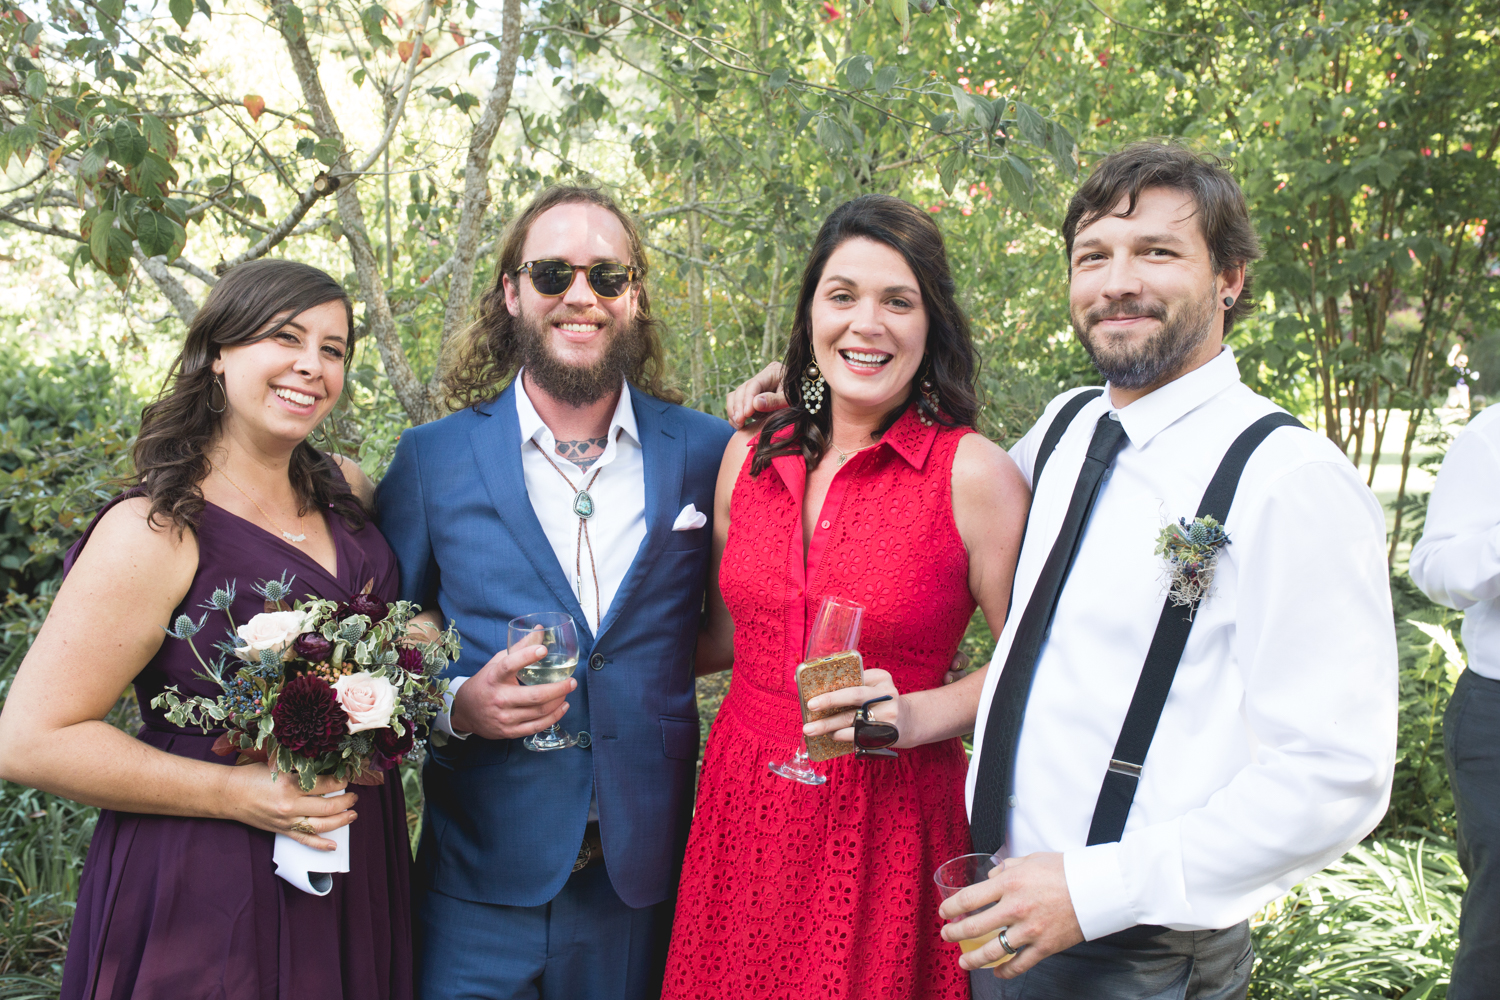 theriverhouse_santacruzweddings_happyhourwedding.jpg